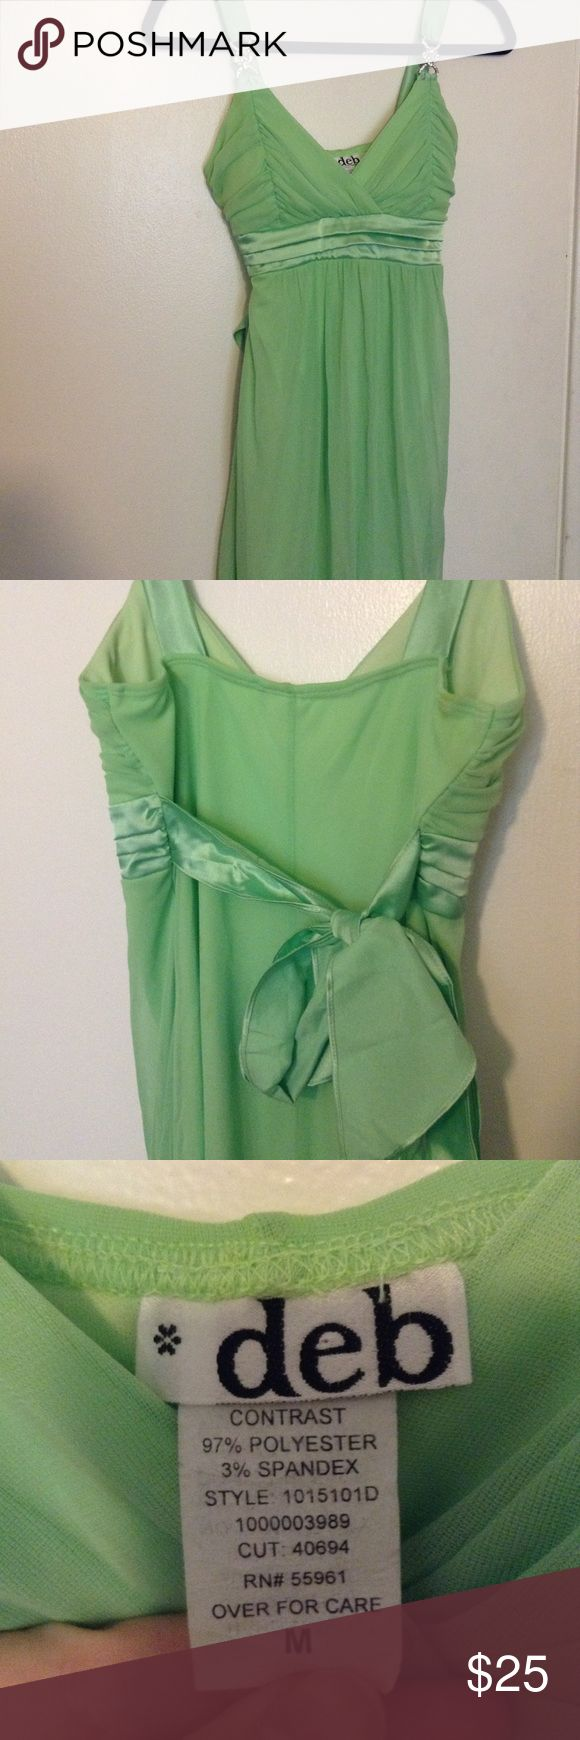 Lime green dress w/ crystal piece on sleeve | Deb Lime green dress from deb. Size medium. One of my favorite dresses I've owned. It no longer fits me so it's time for it to go to a new home! Straps are about two inches. Dress ends above the knee. Dress: 100% polyester. Lining: 97% polyester 3% spandex. Ribbon ties in back. Smoke free home. Small stains on backside near right shoulder and left side of back as shown in last two pictures. Deb Dresses